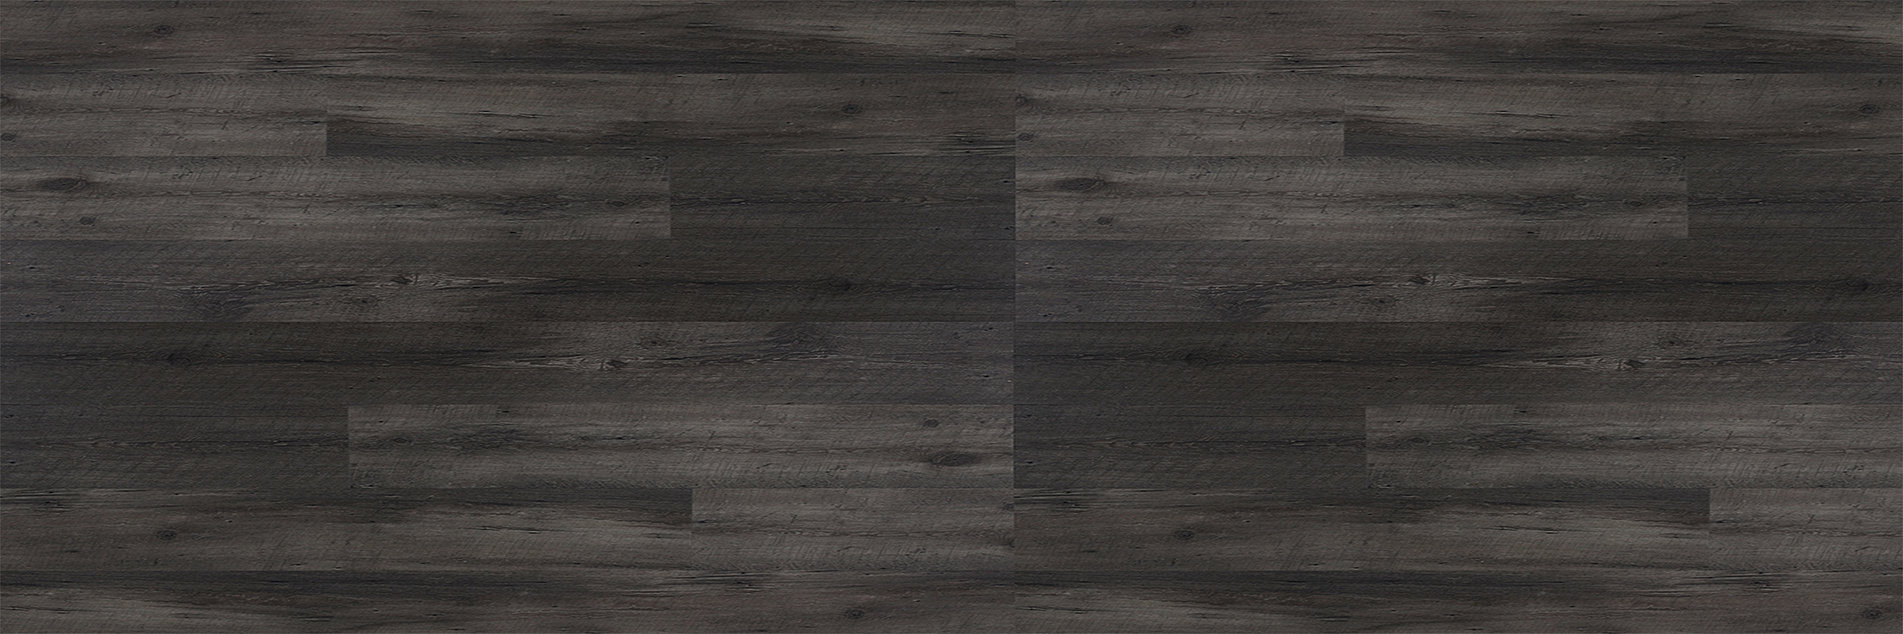 National Flooring Products Tuffcore